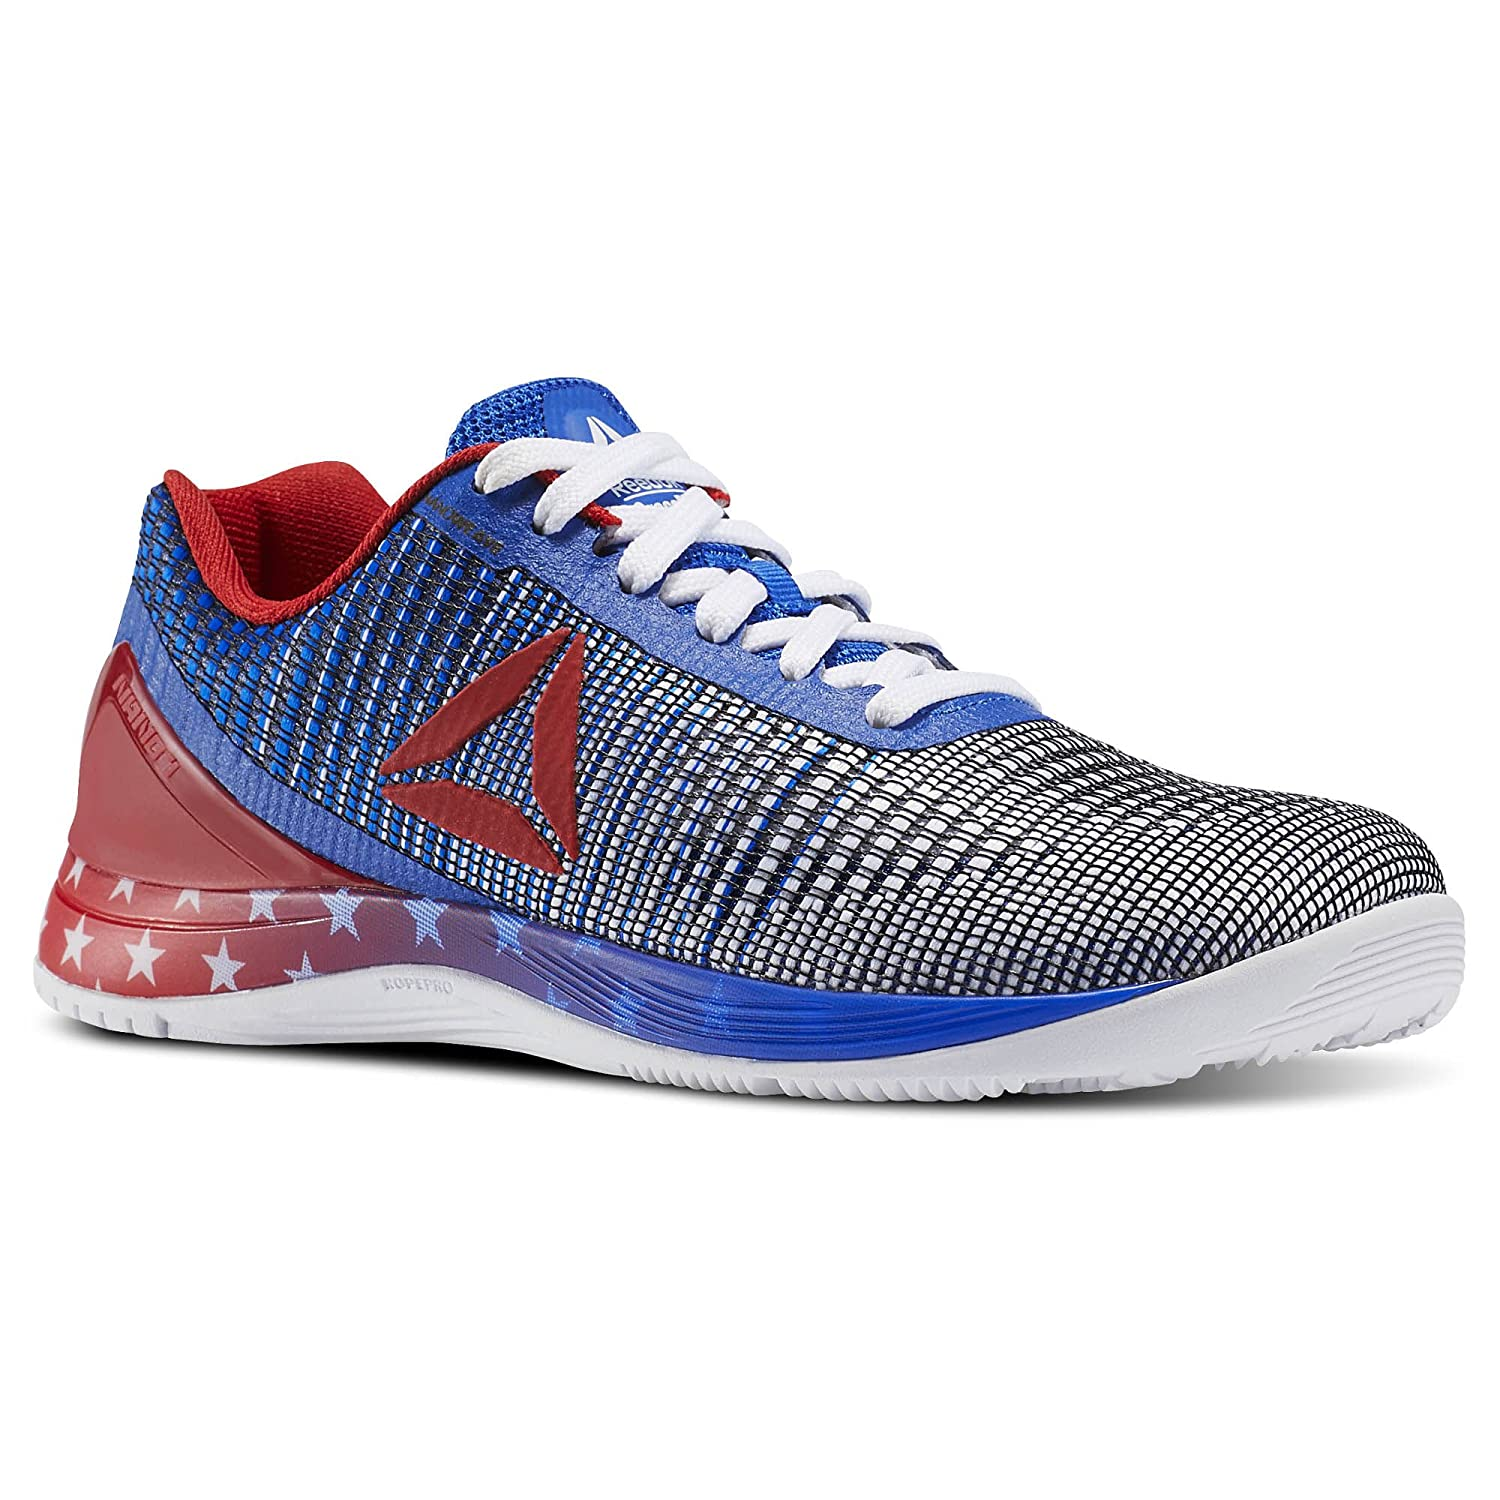 Reebok Scarpa Crossfit Nano 5.0 Uomo 42.5: Amazon.it: Sport